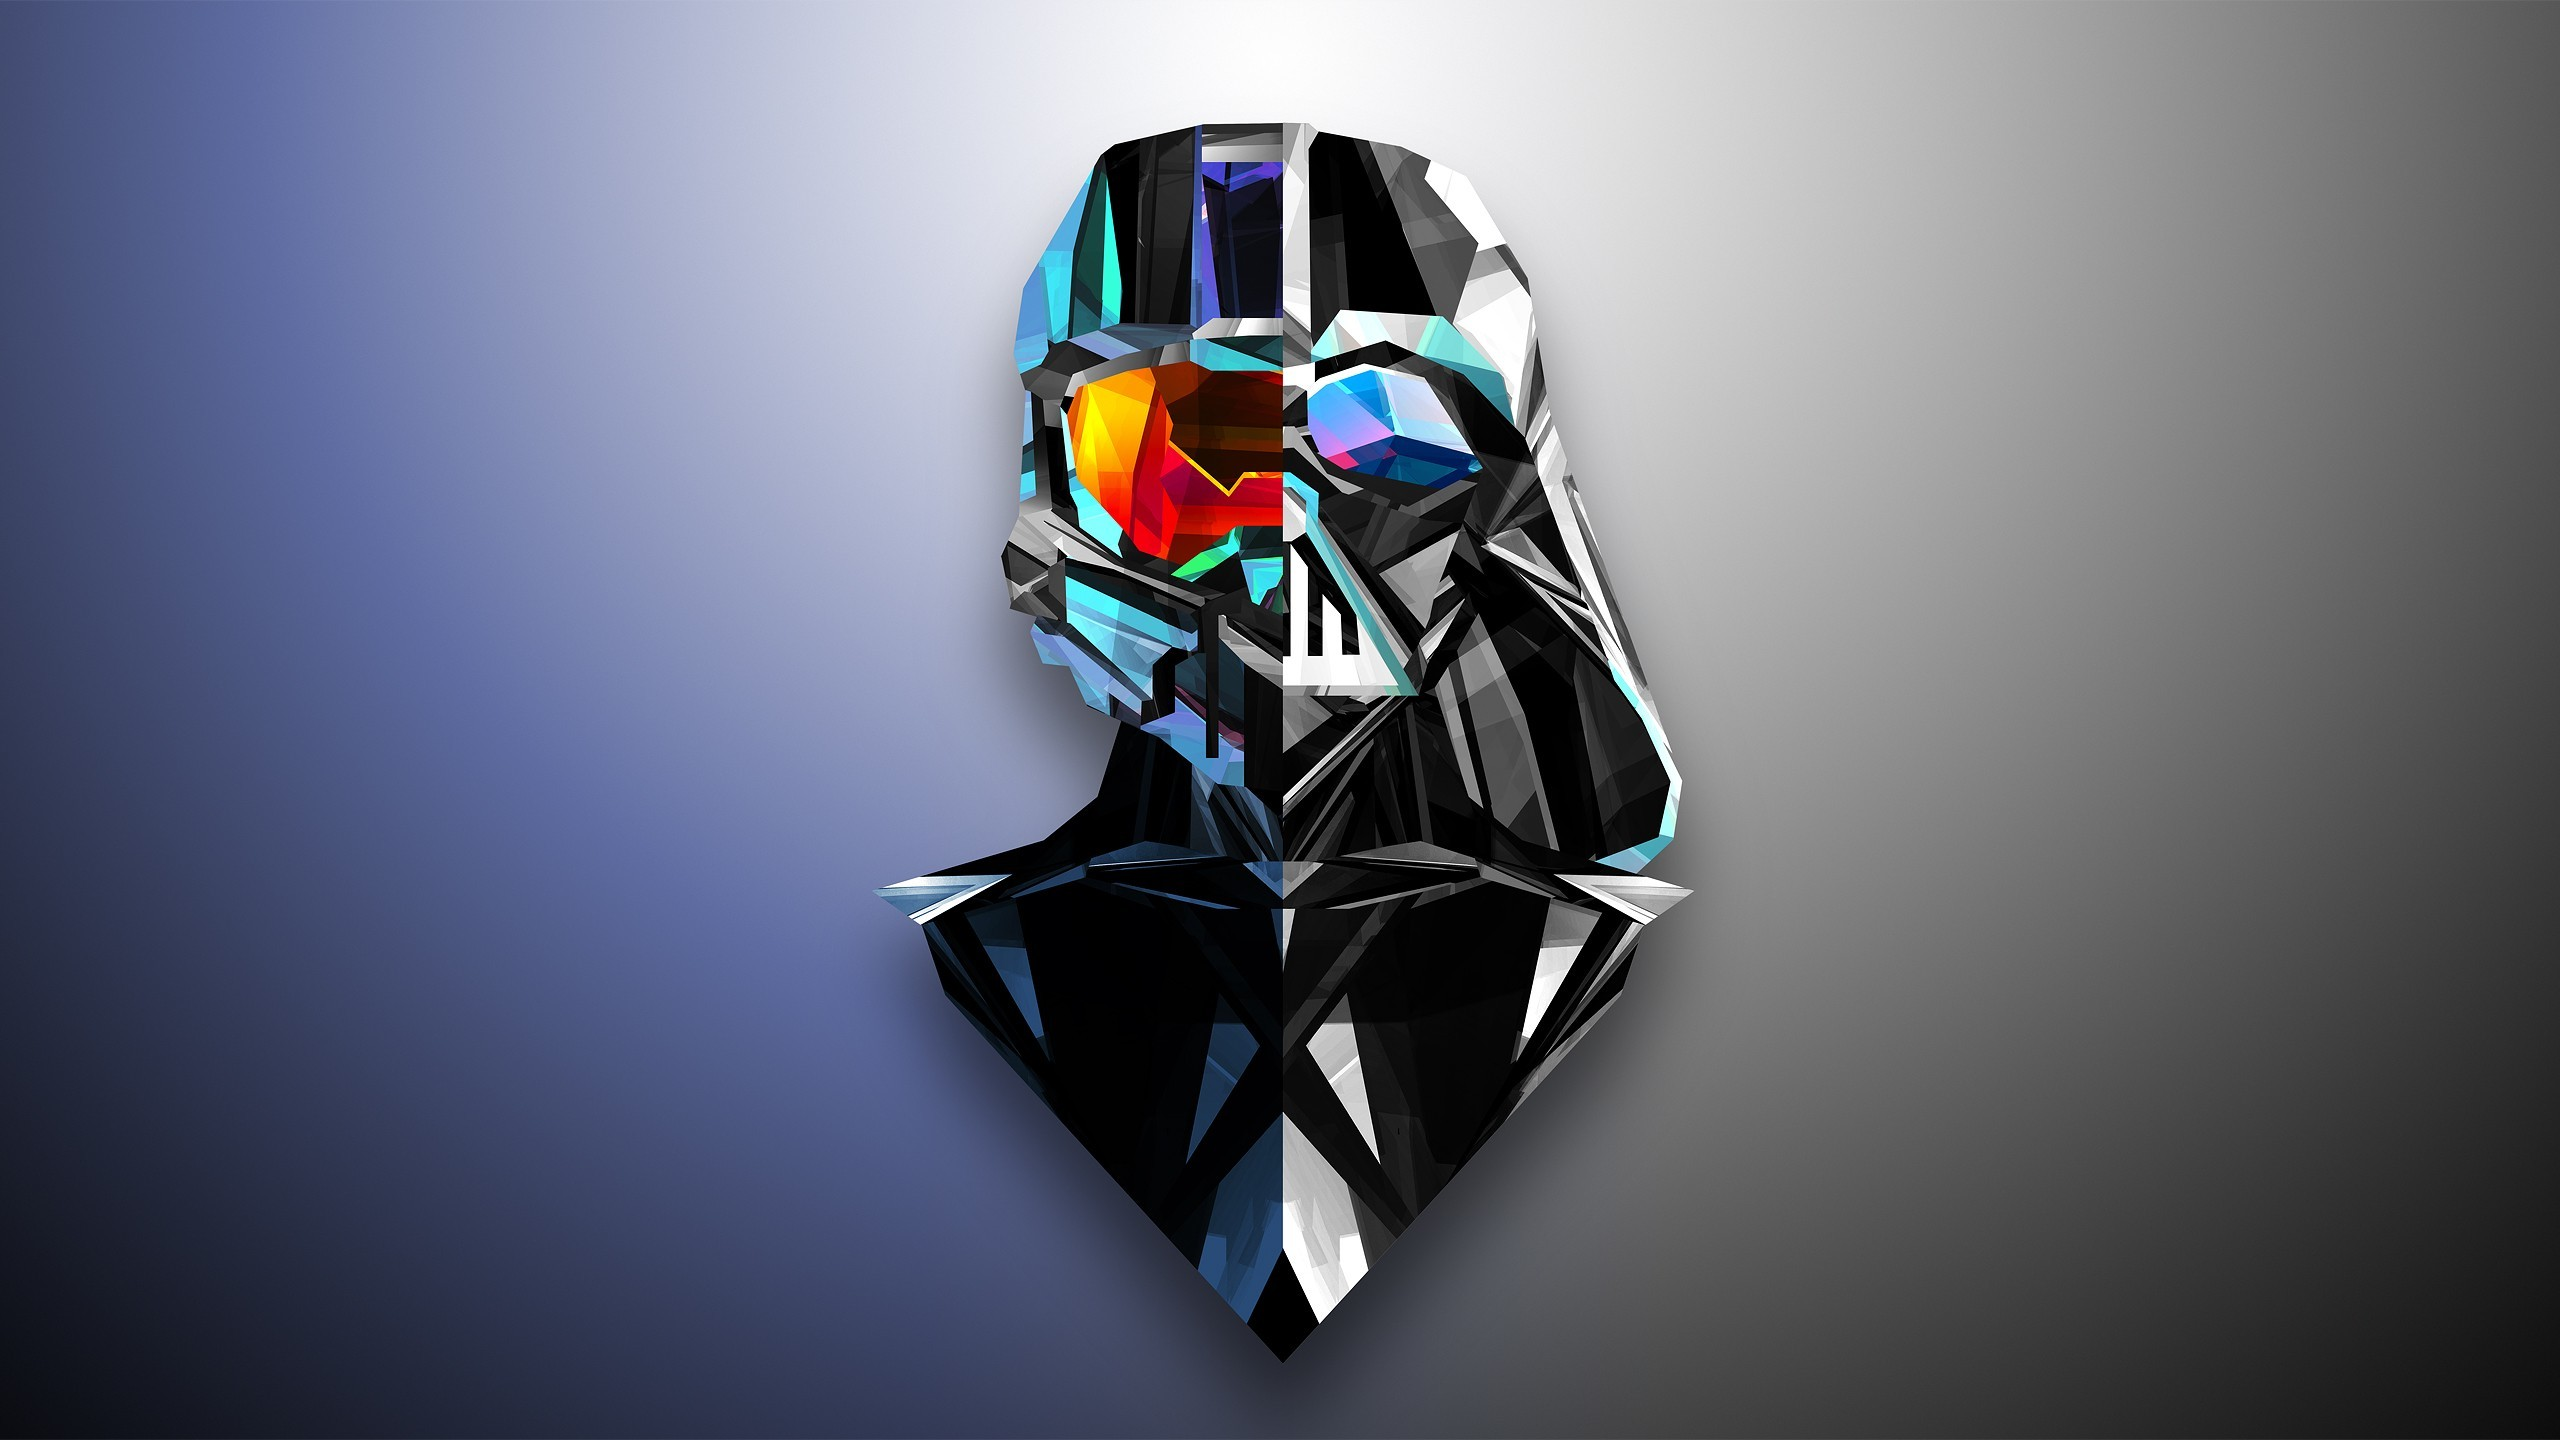 2560x1440 Abstract, Darth Vader, Master Chief, Low Poly, Justin Maller, Halo .